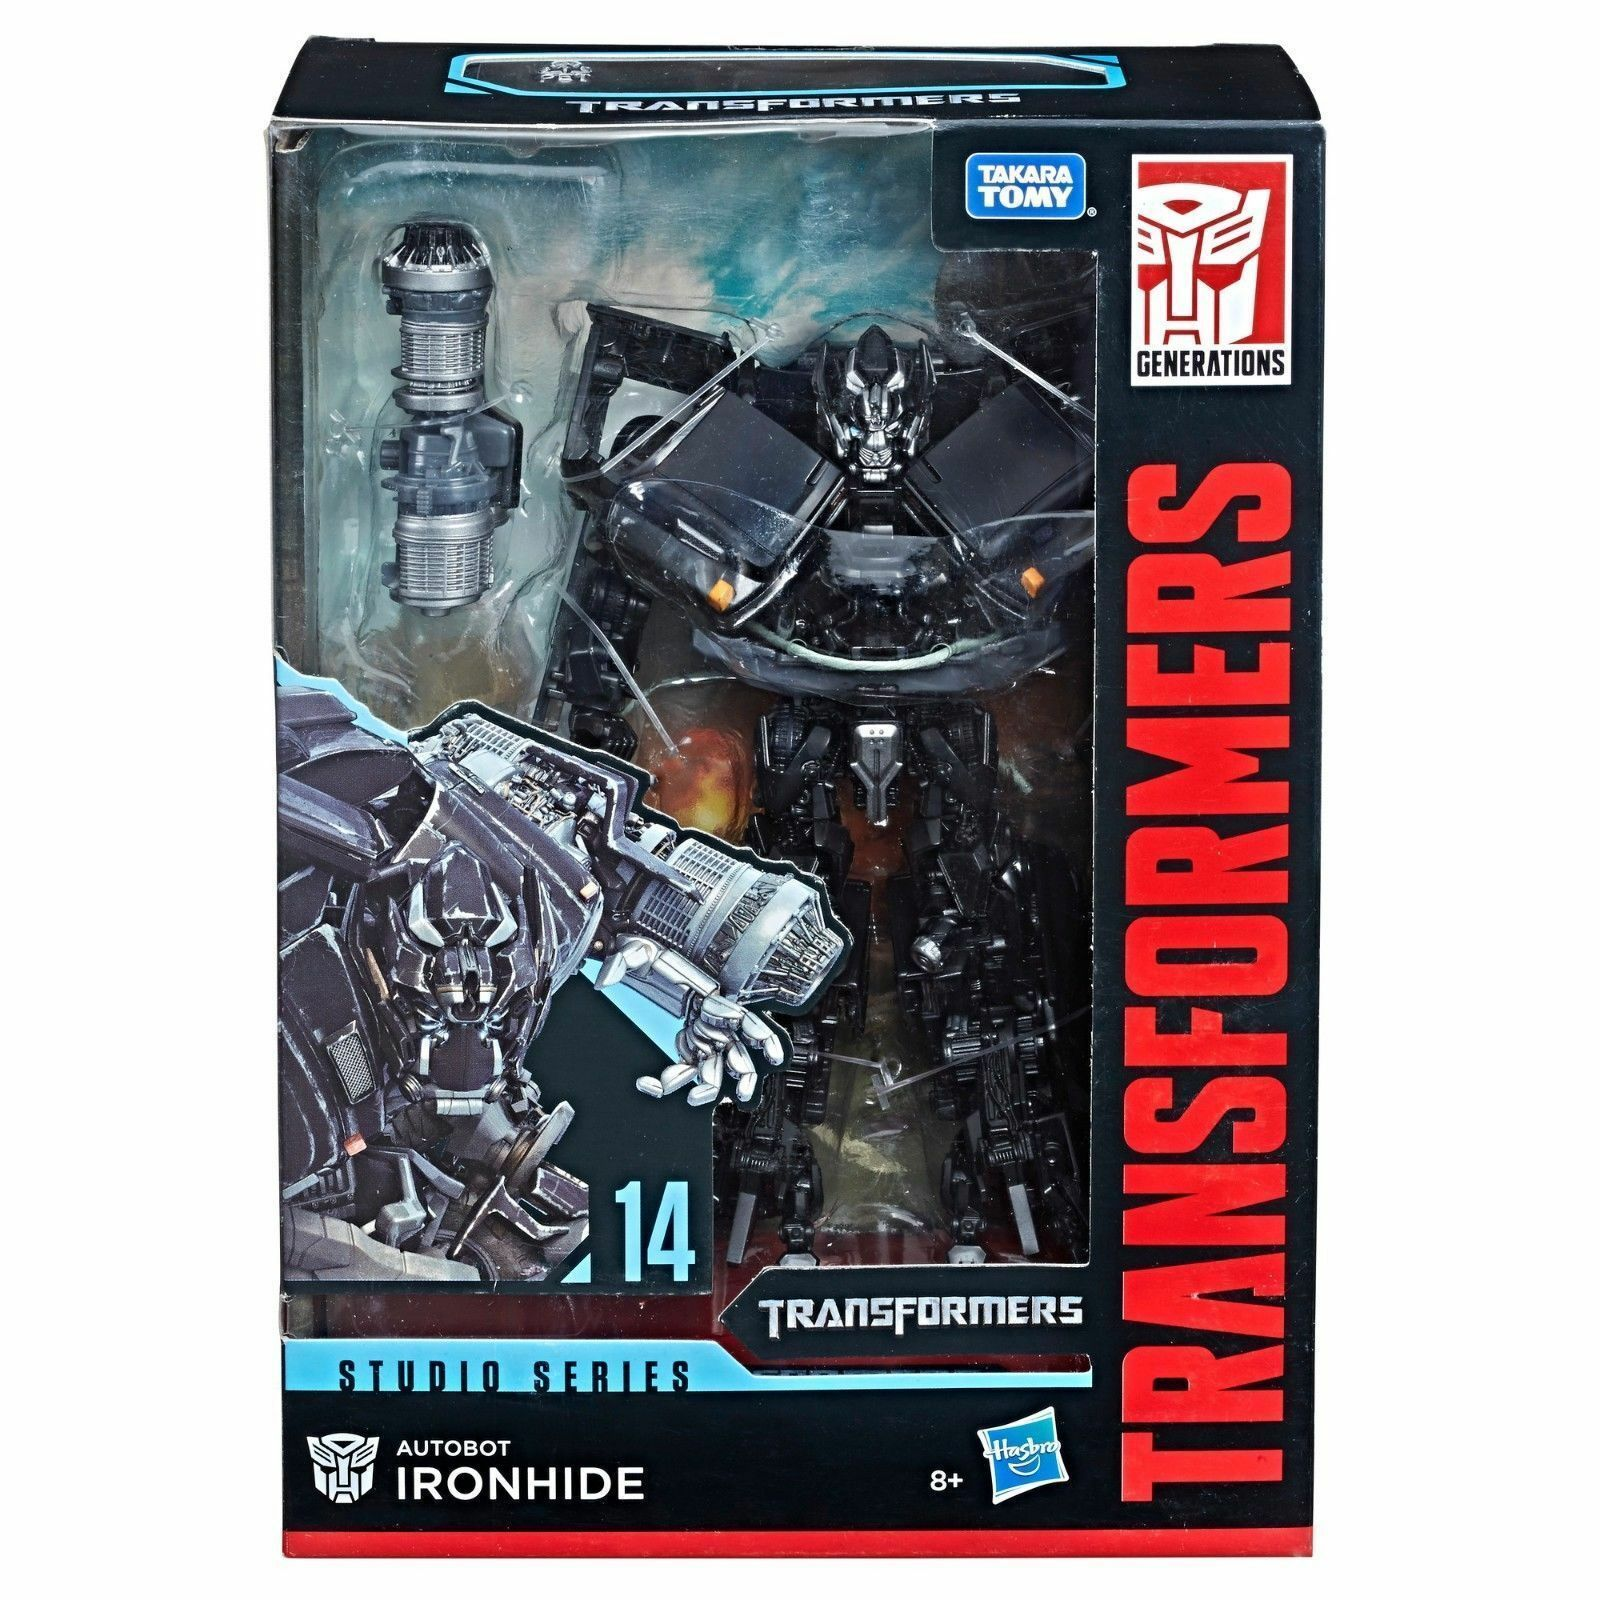 NEW TRANSFORMERS GENERATIONS STUDIO SERIES VOYAGER IRONHIDE FIGURE